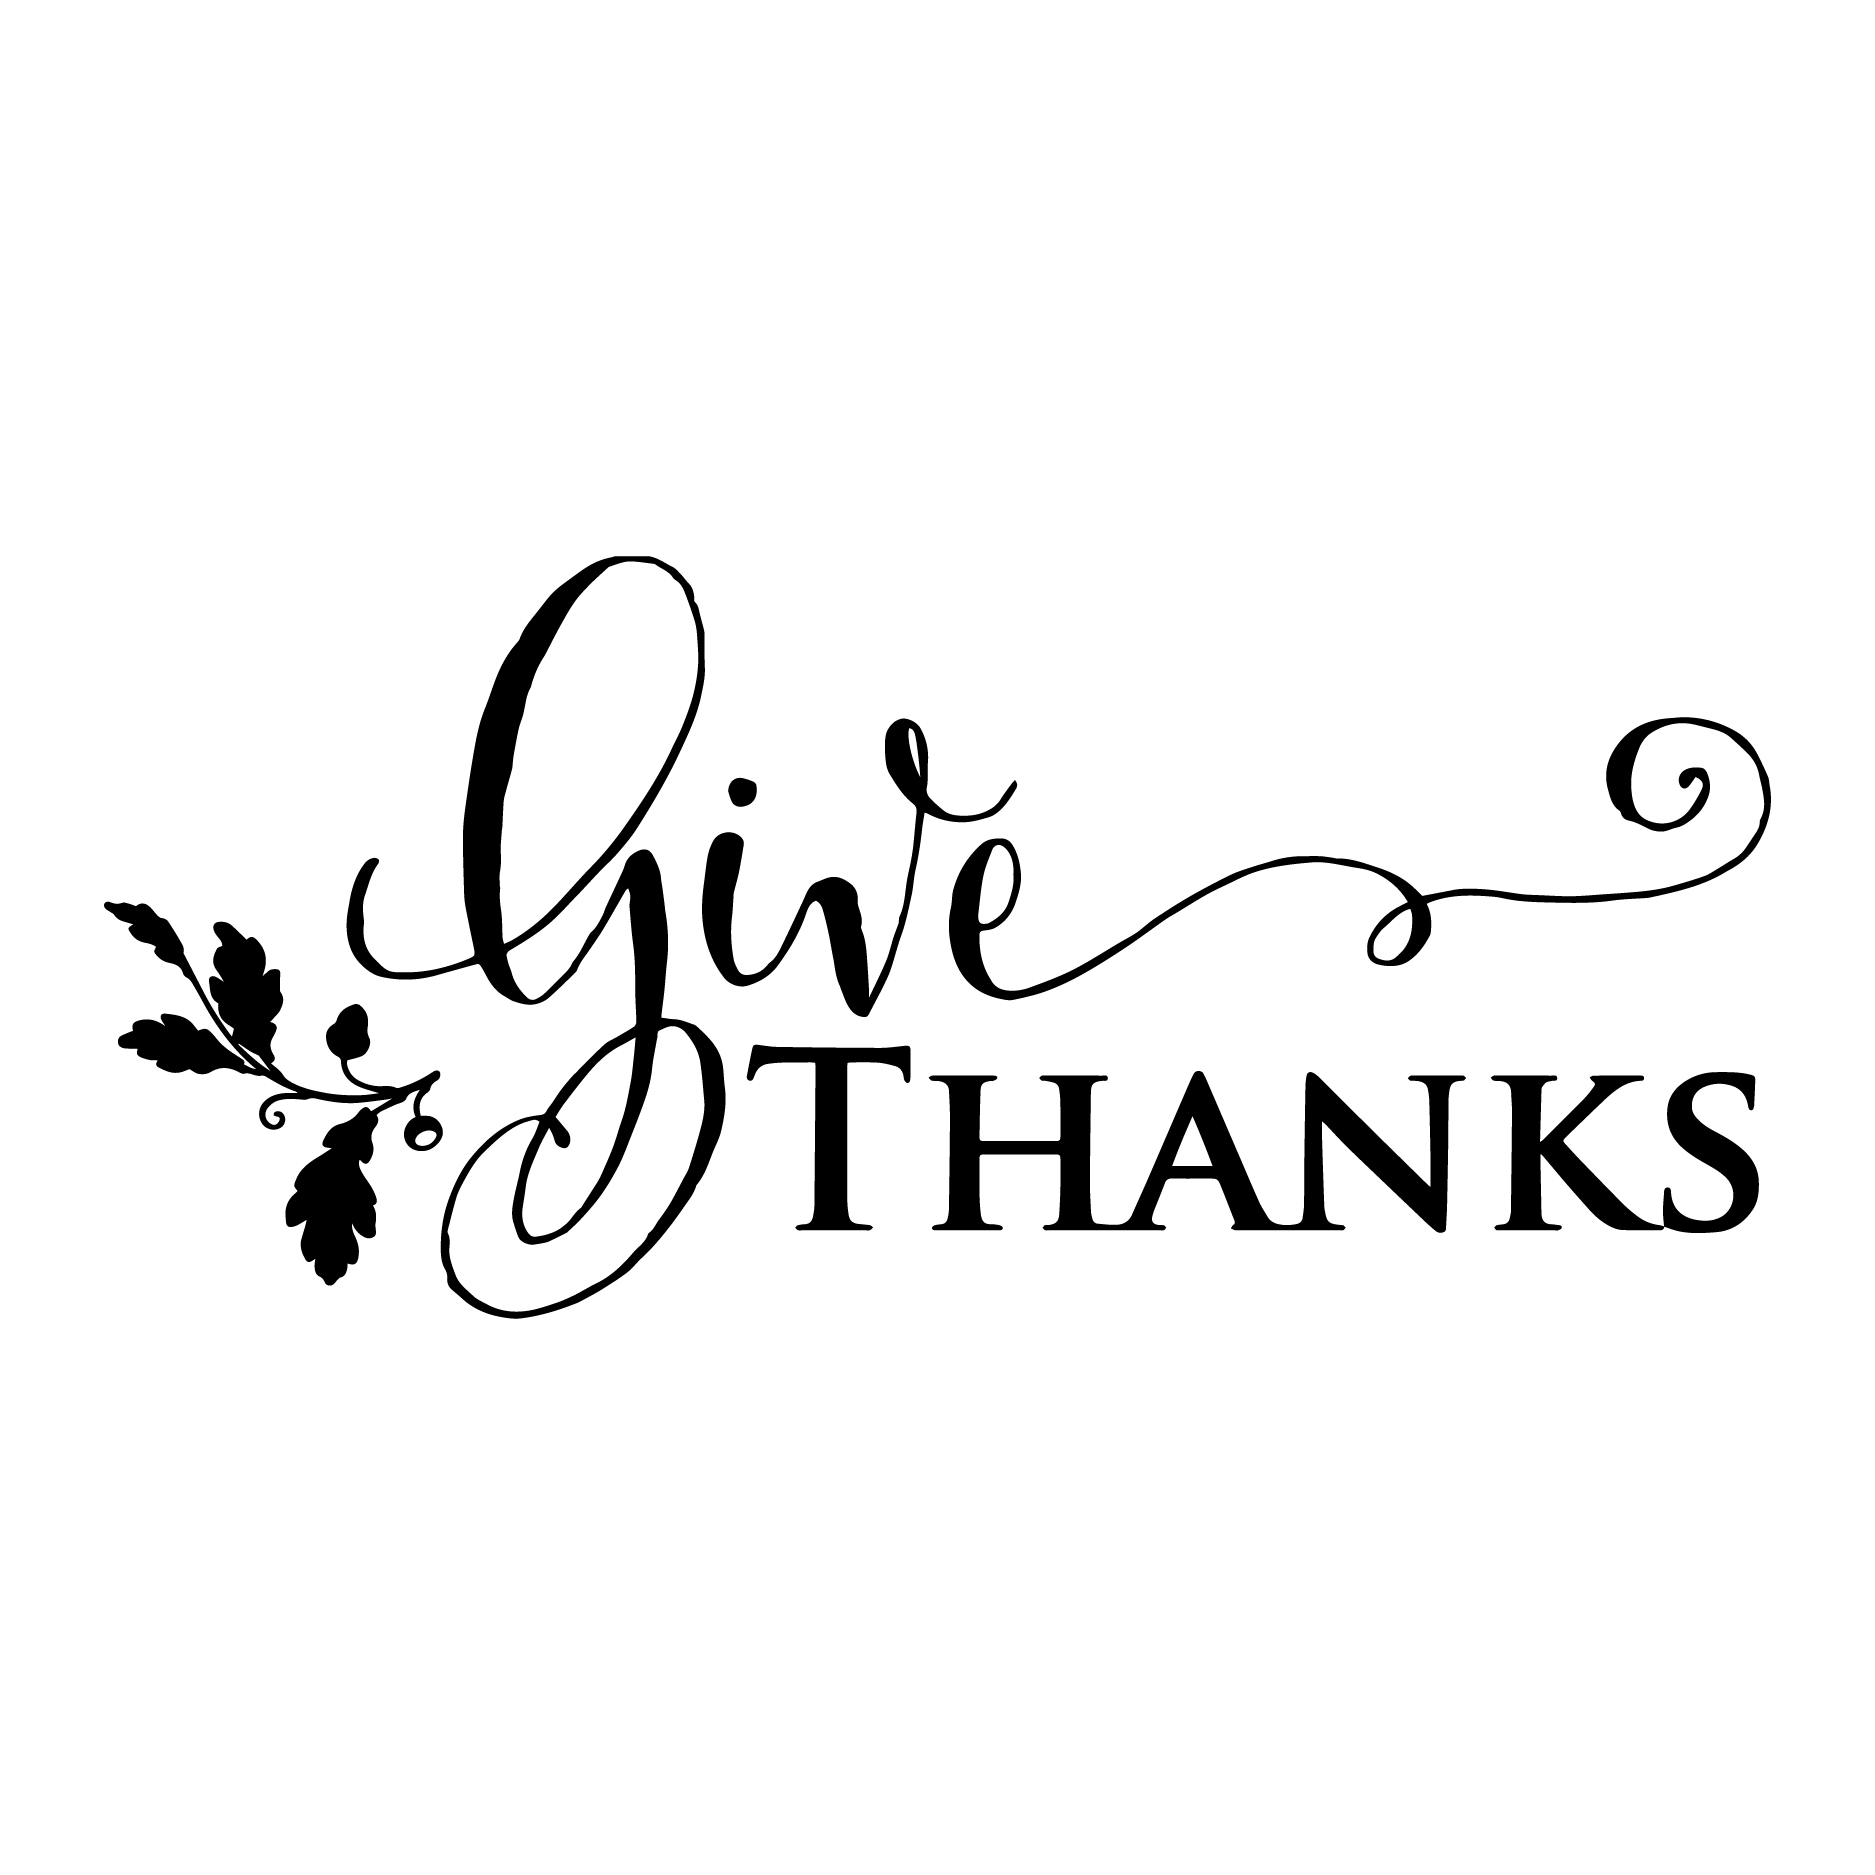 Black n white thanksgiving clipart image royalty free download Give Thanks PNG Black And White Transparent Give Thanks Black And ... image royalty free download